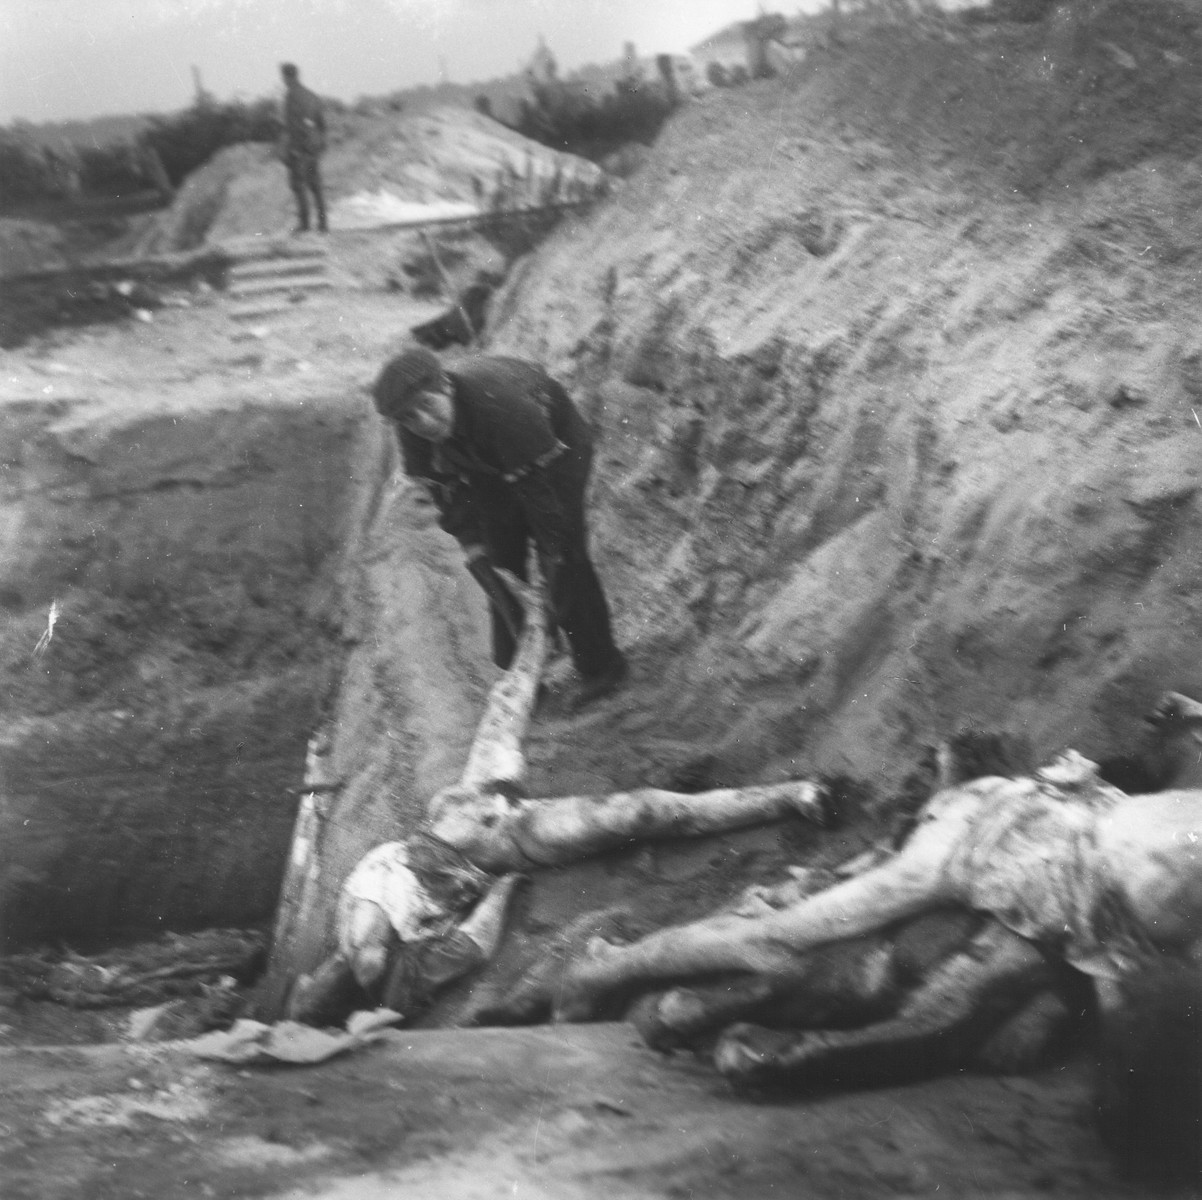 """A boy working in the Warsaw ghetto cemetery drags a corpse to the edge of the mass grave where it will be buried.    Joest's caption reads: """"The boy slid the dead over the edge into the pit.  A German soldier was standing in the background, watching."""""""